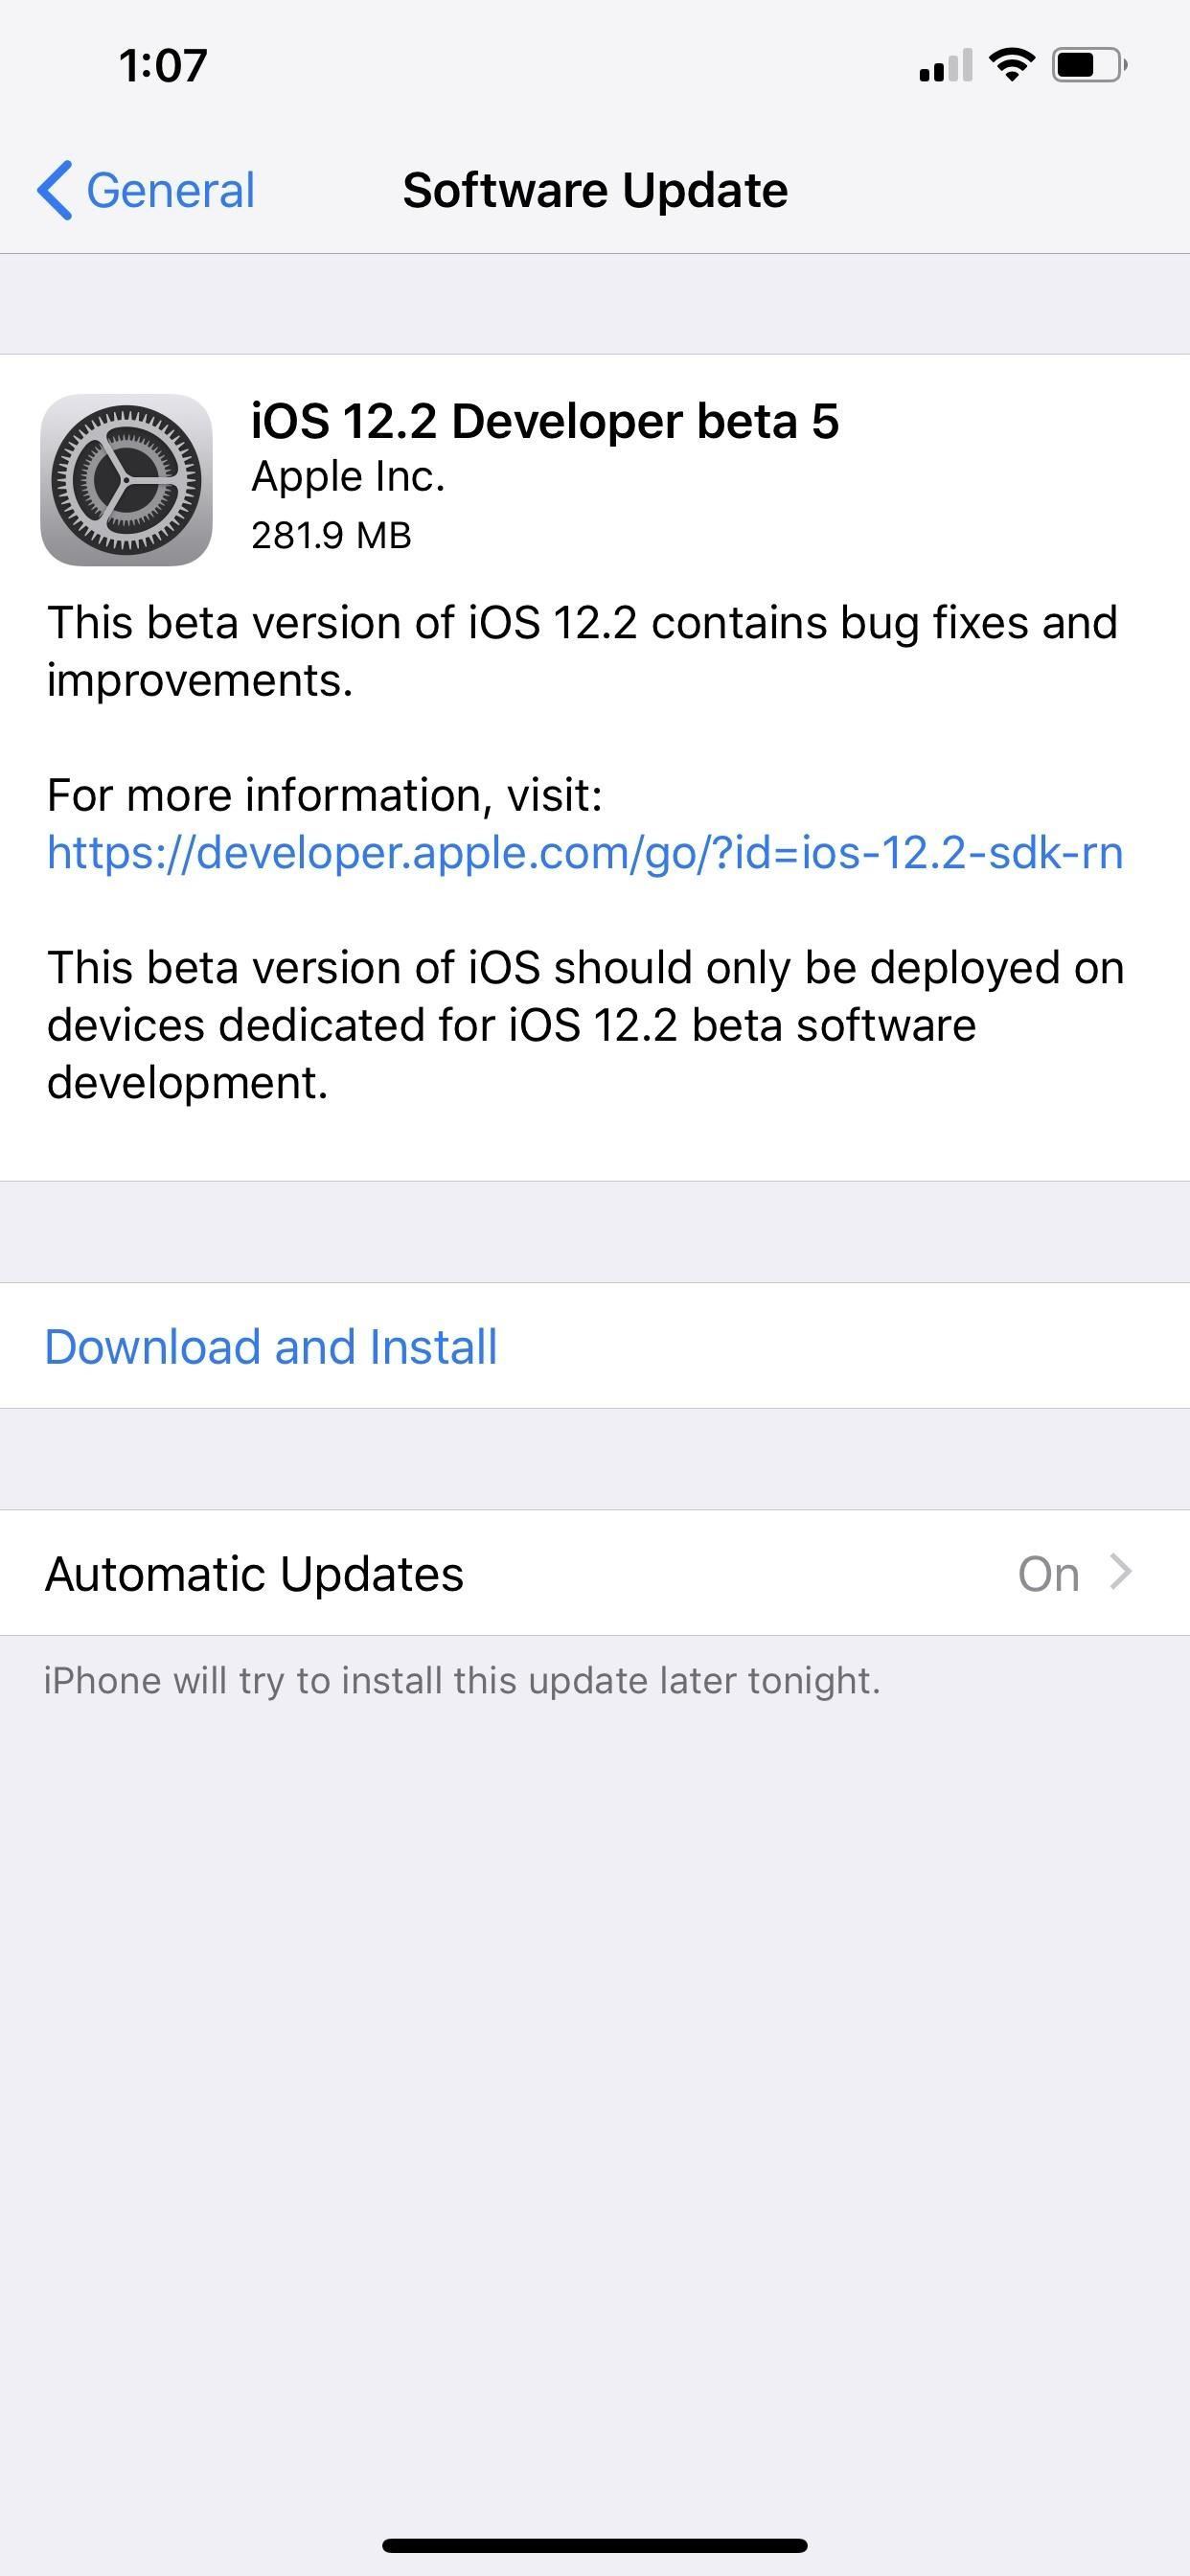 Apple just released iOS 12.2 Developer Beta 5 for iPhone to software tester